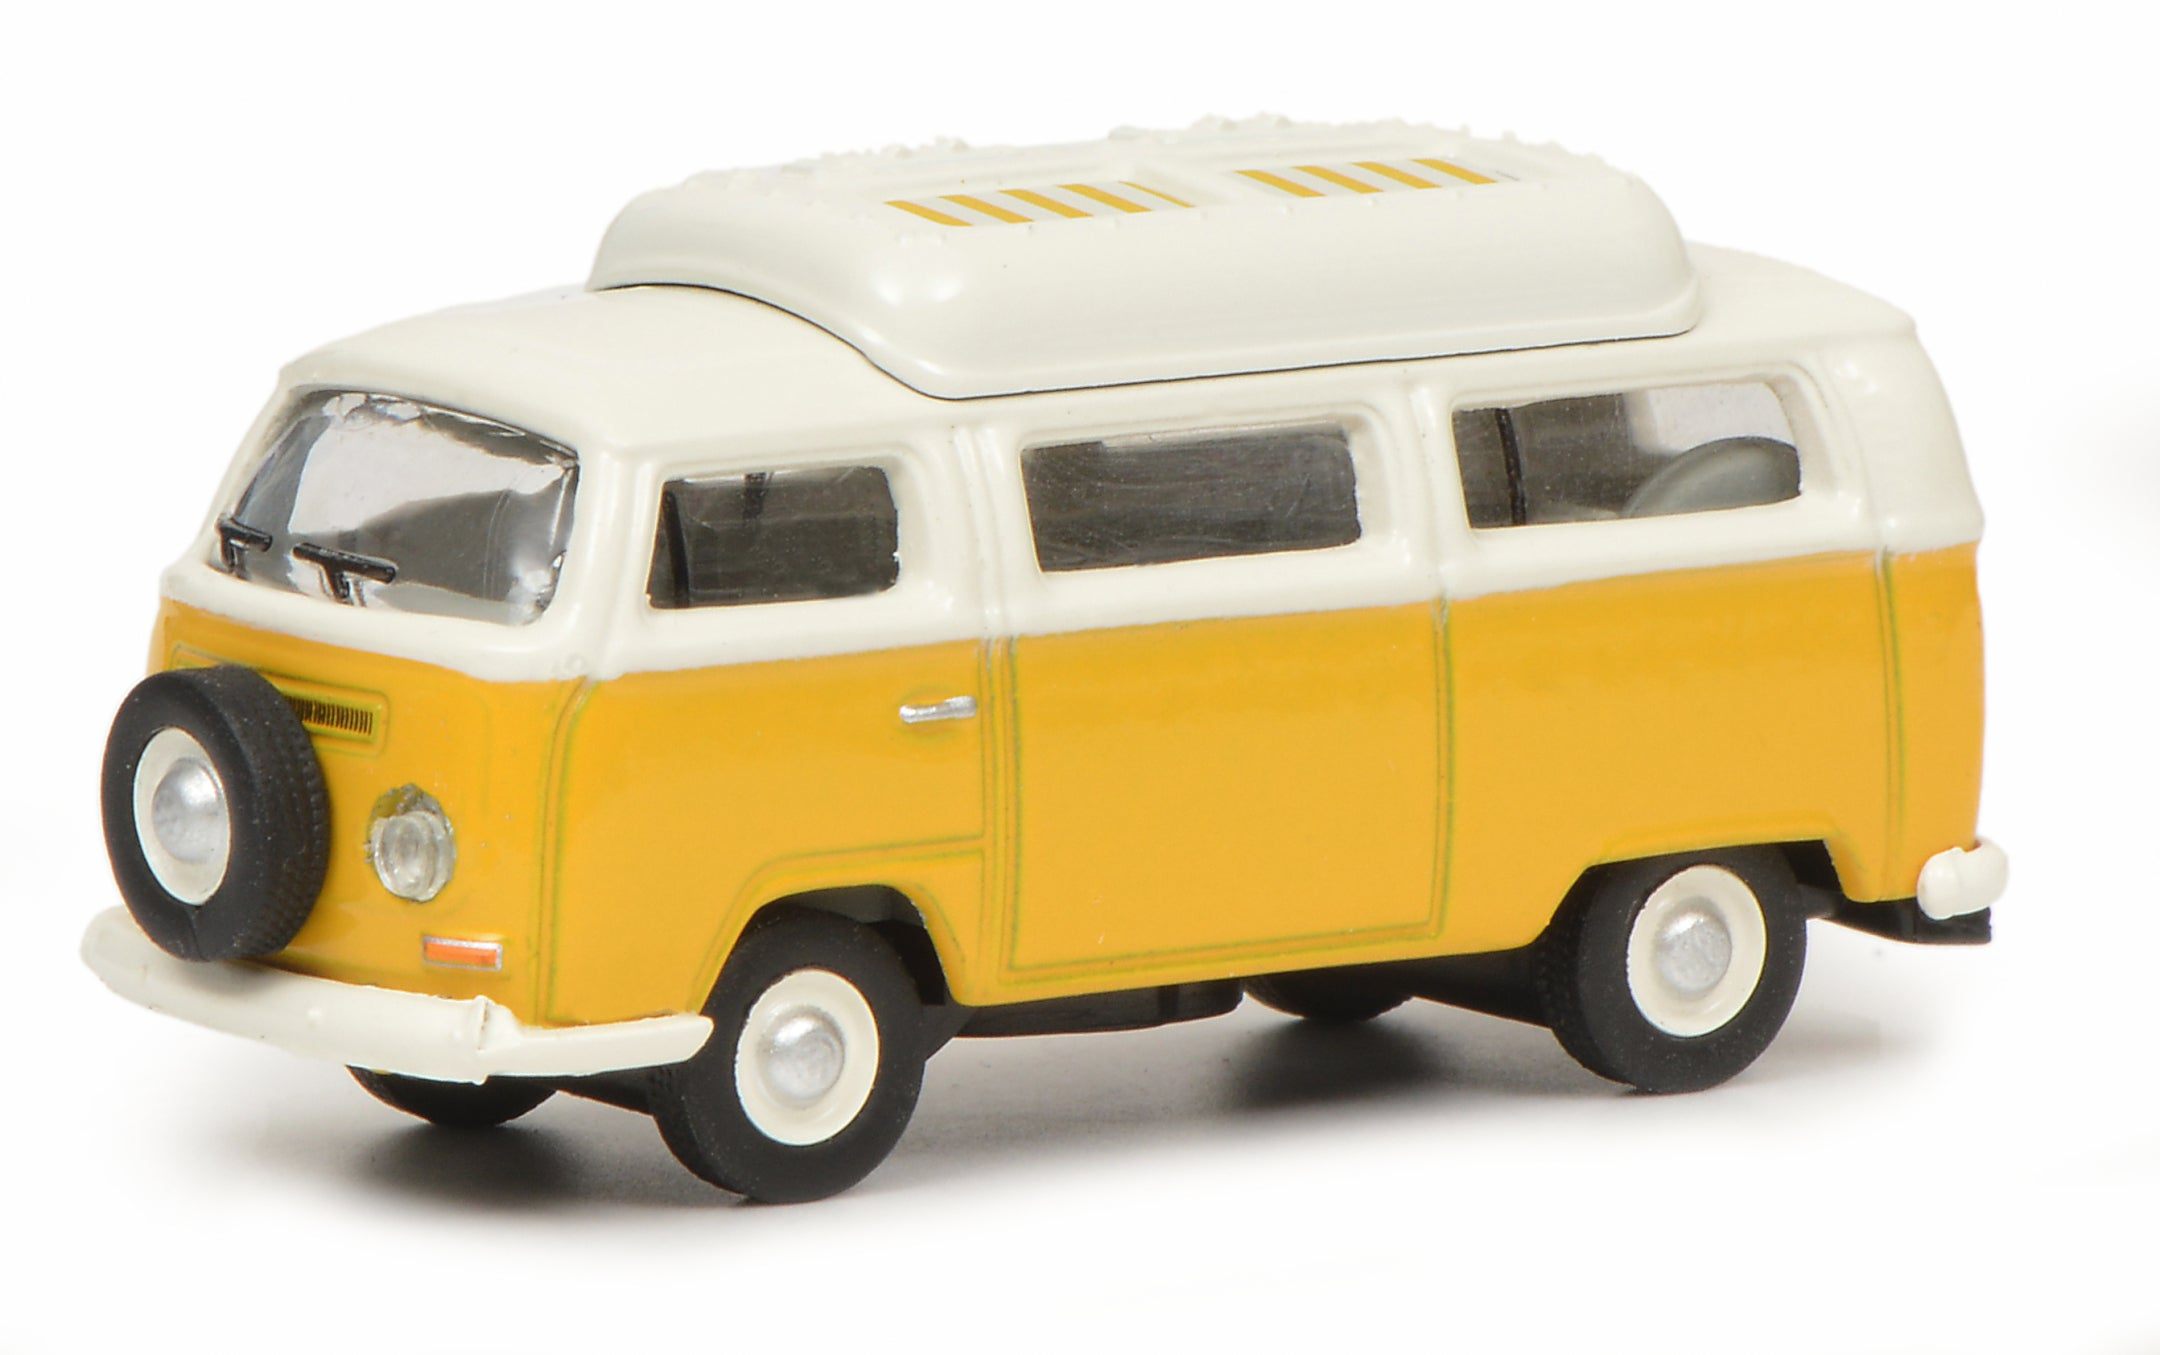 Schuco 1:87 Volkswagen T2a camping bus with closed roof yellow white 452644400